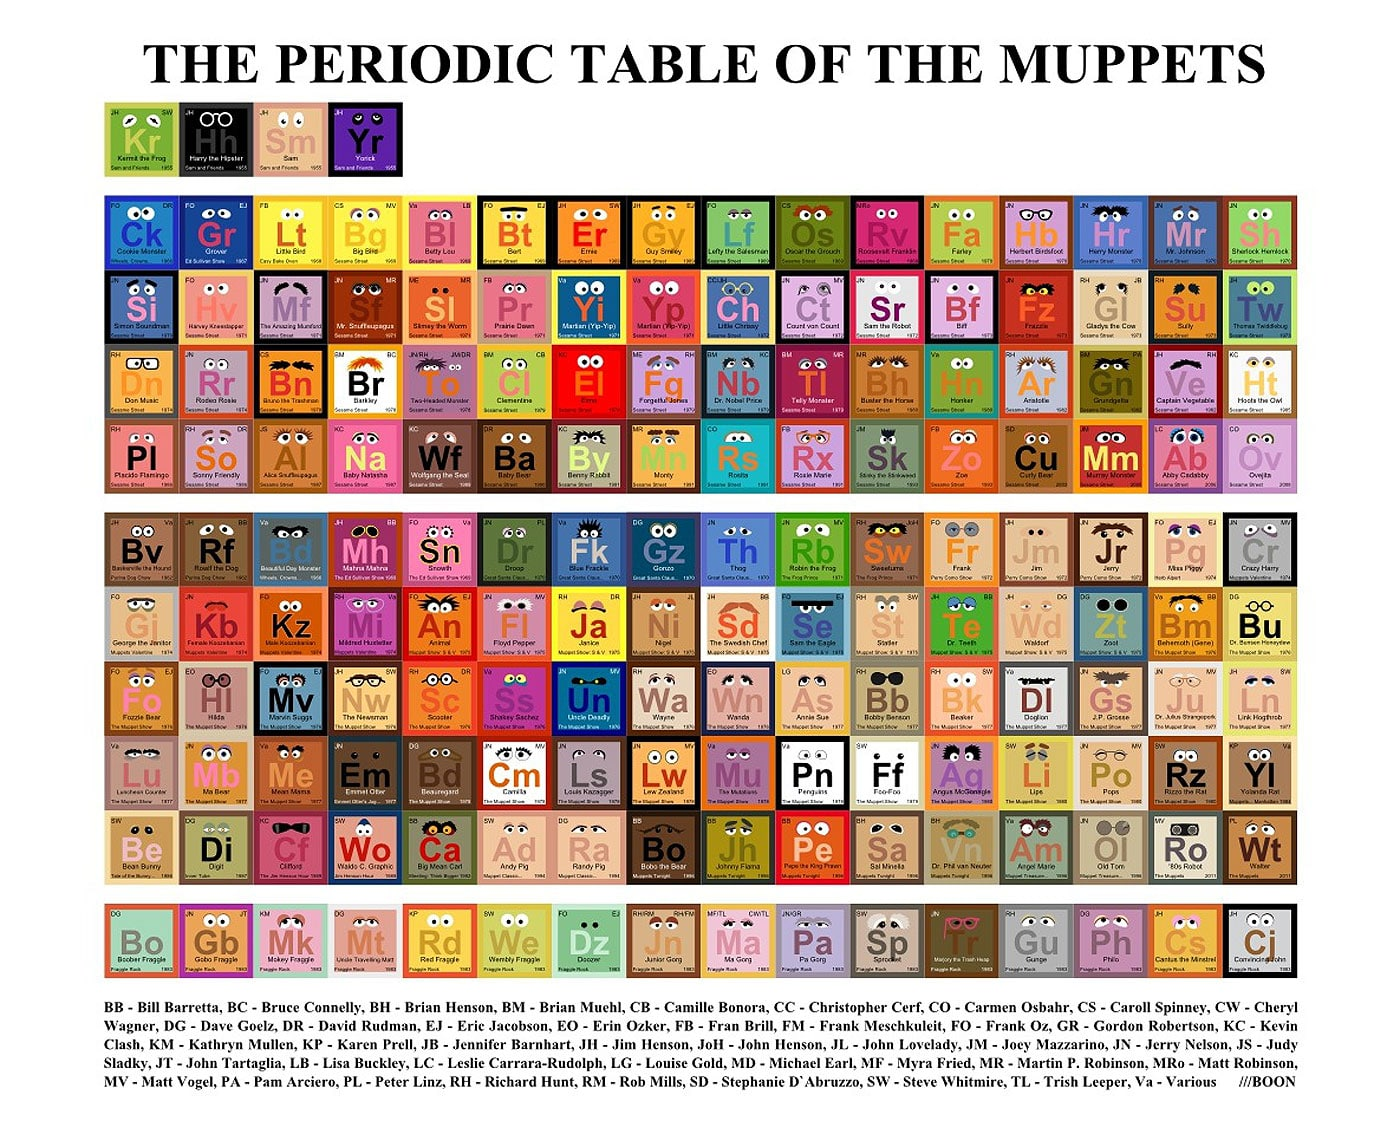 muppet-characters-classification-chart